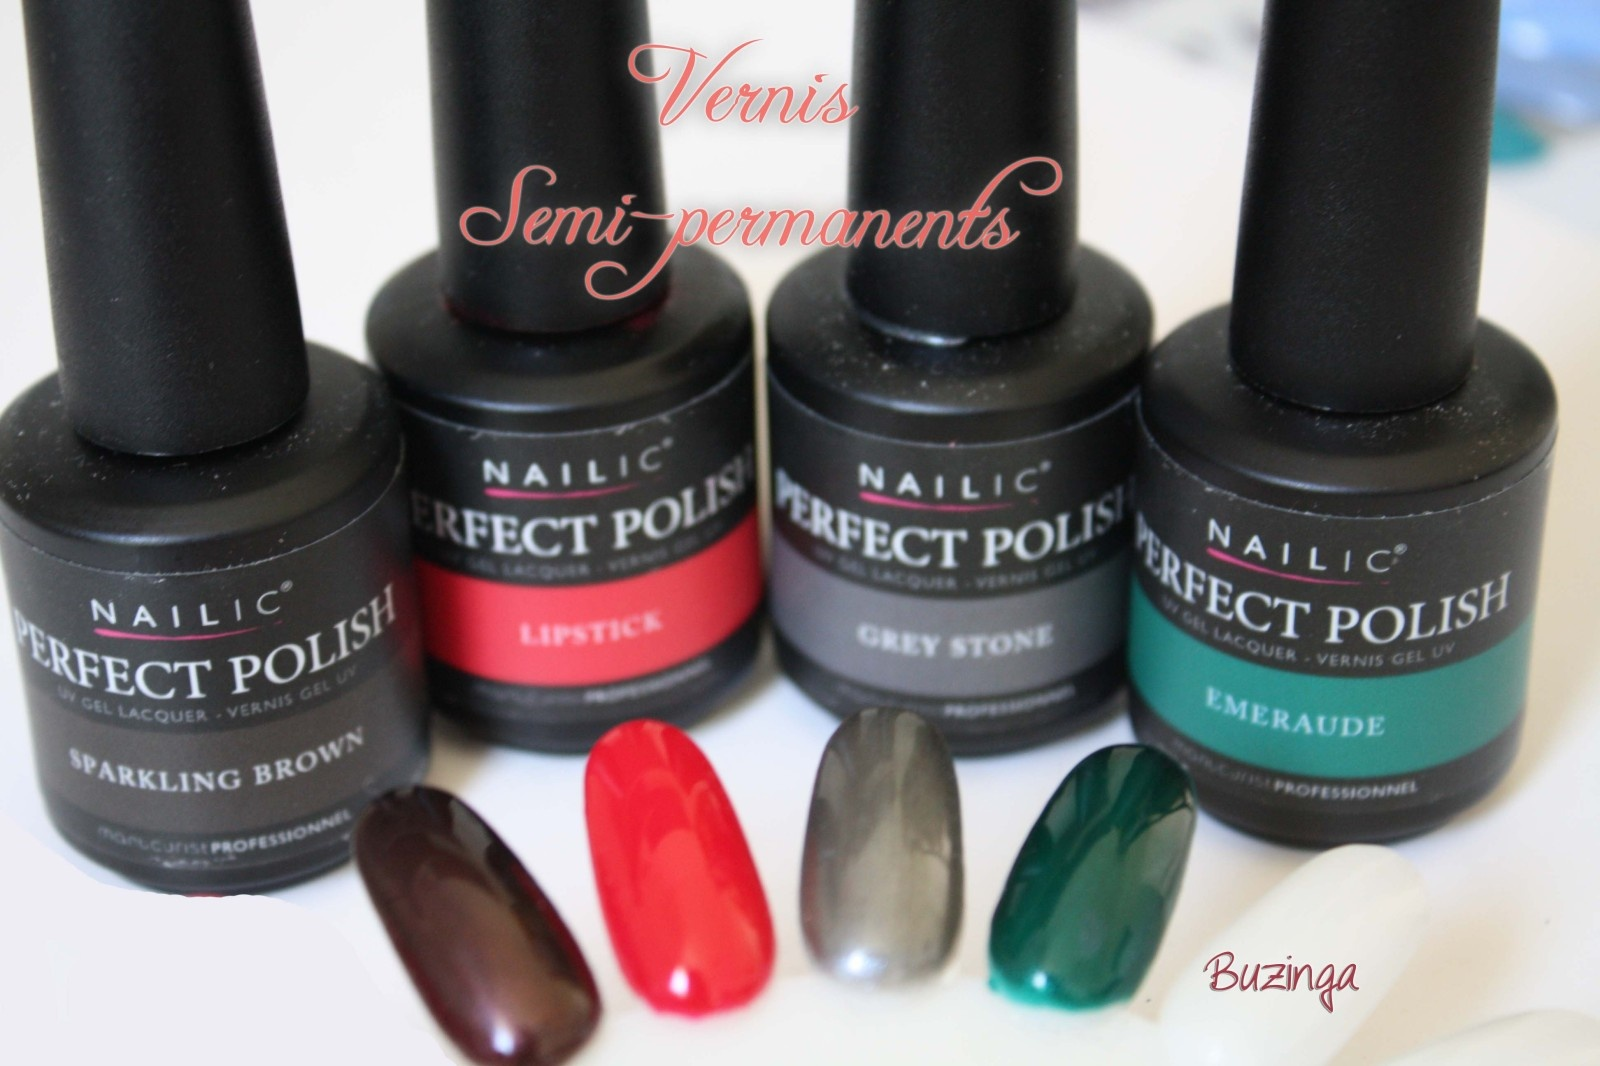 perfect-polish-nailic-jpg.710006